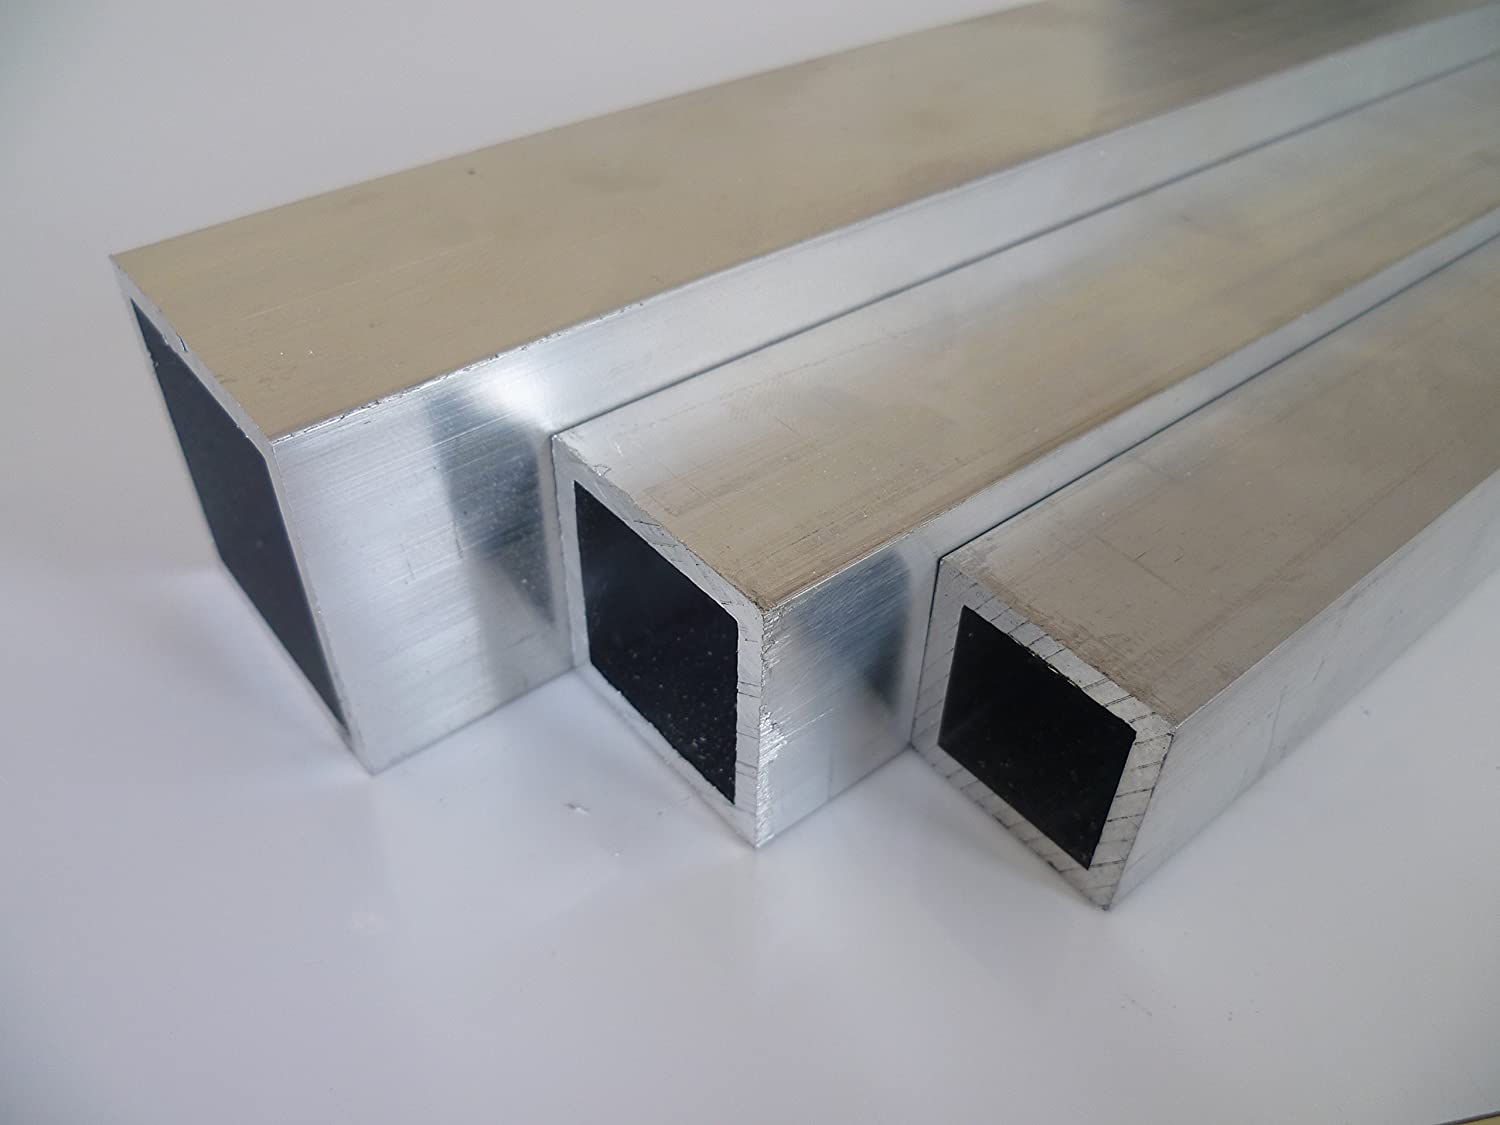 2/m 2000/mm +//-5/mm B /& T Metal Aluminium Square Tube 020X020X02/mm Made ALM gsi0,5//°F22/Schweissbar Suitable for Anodising Length Approx